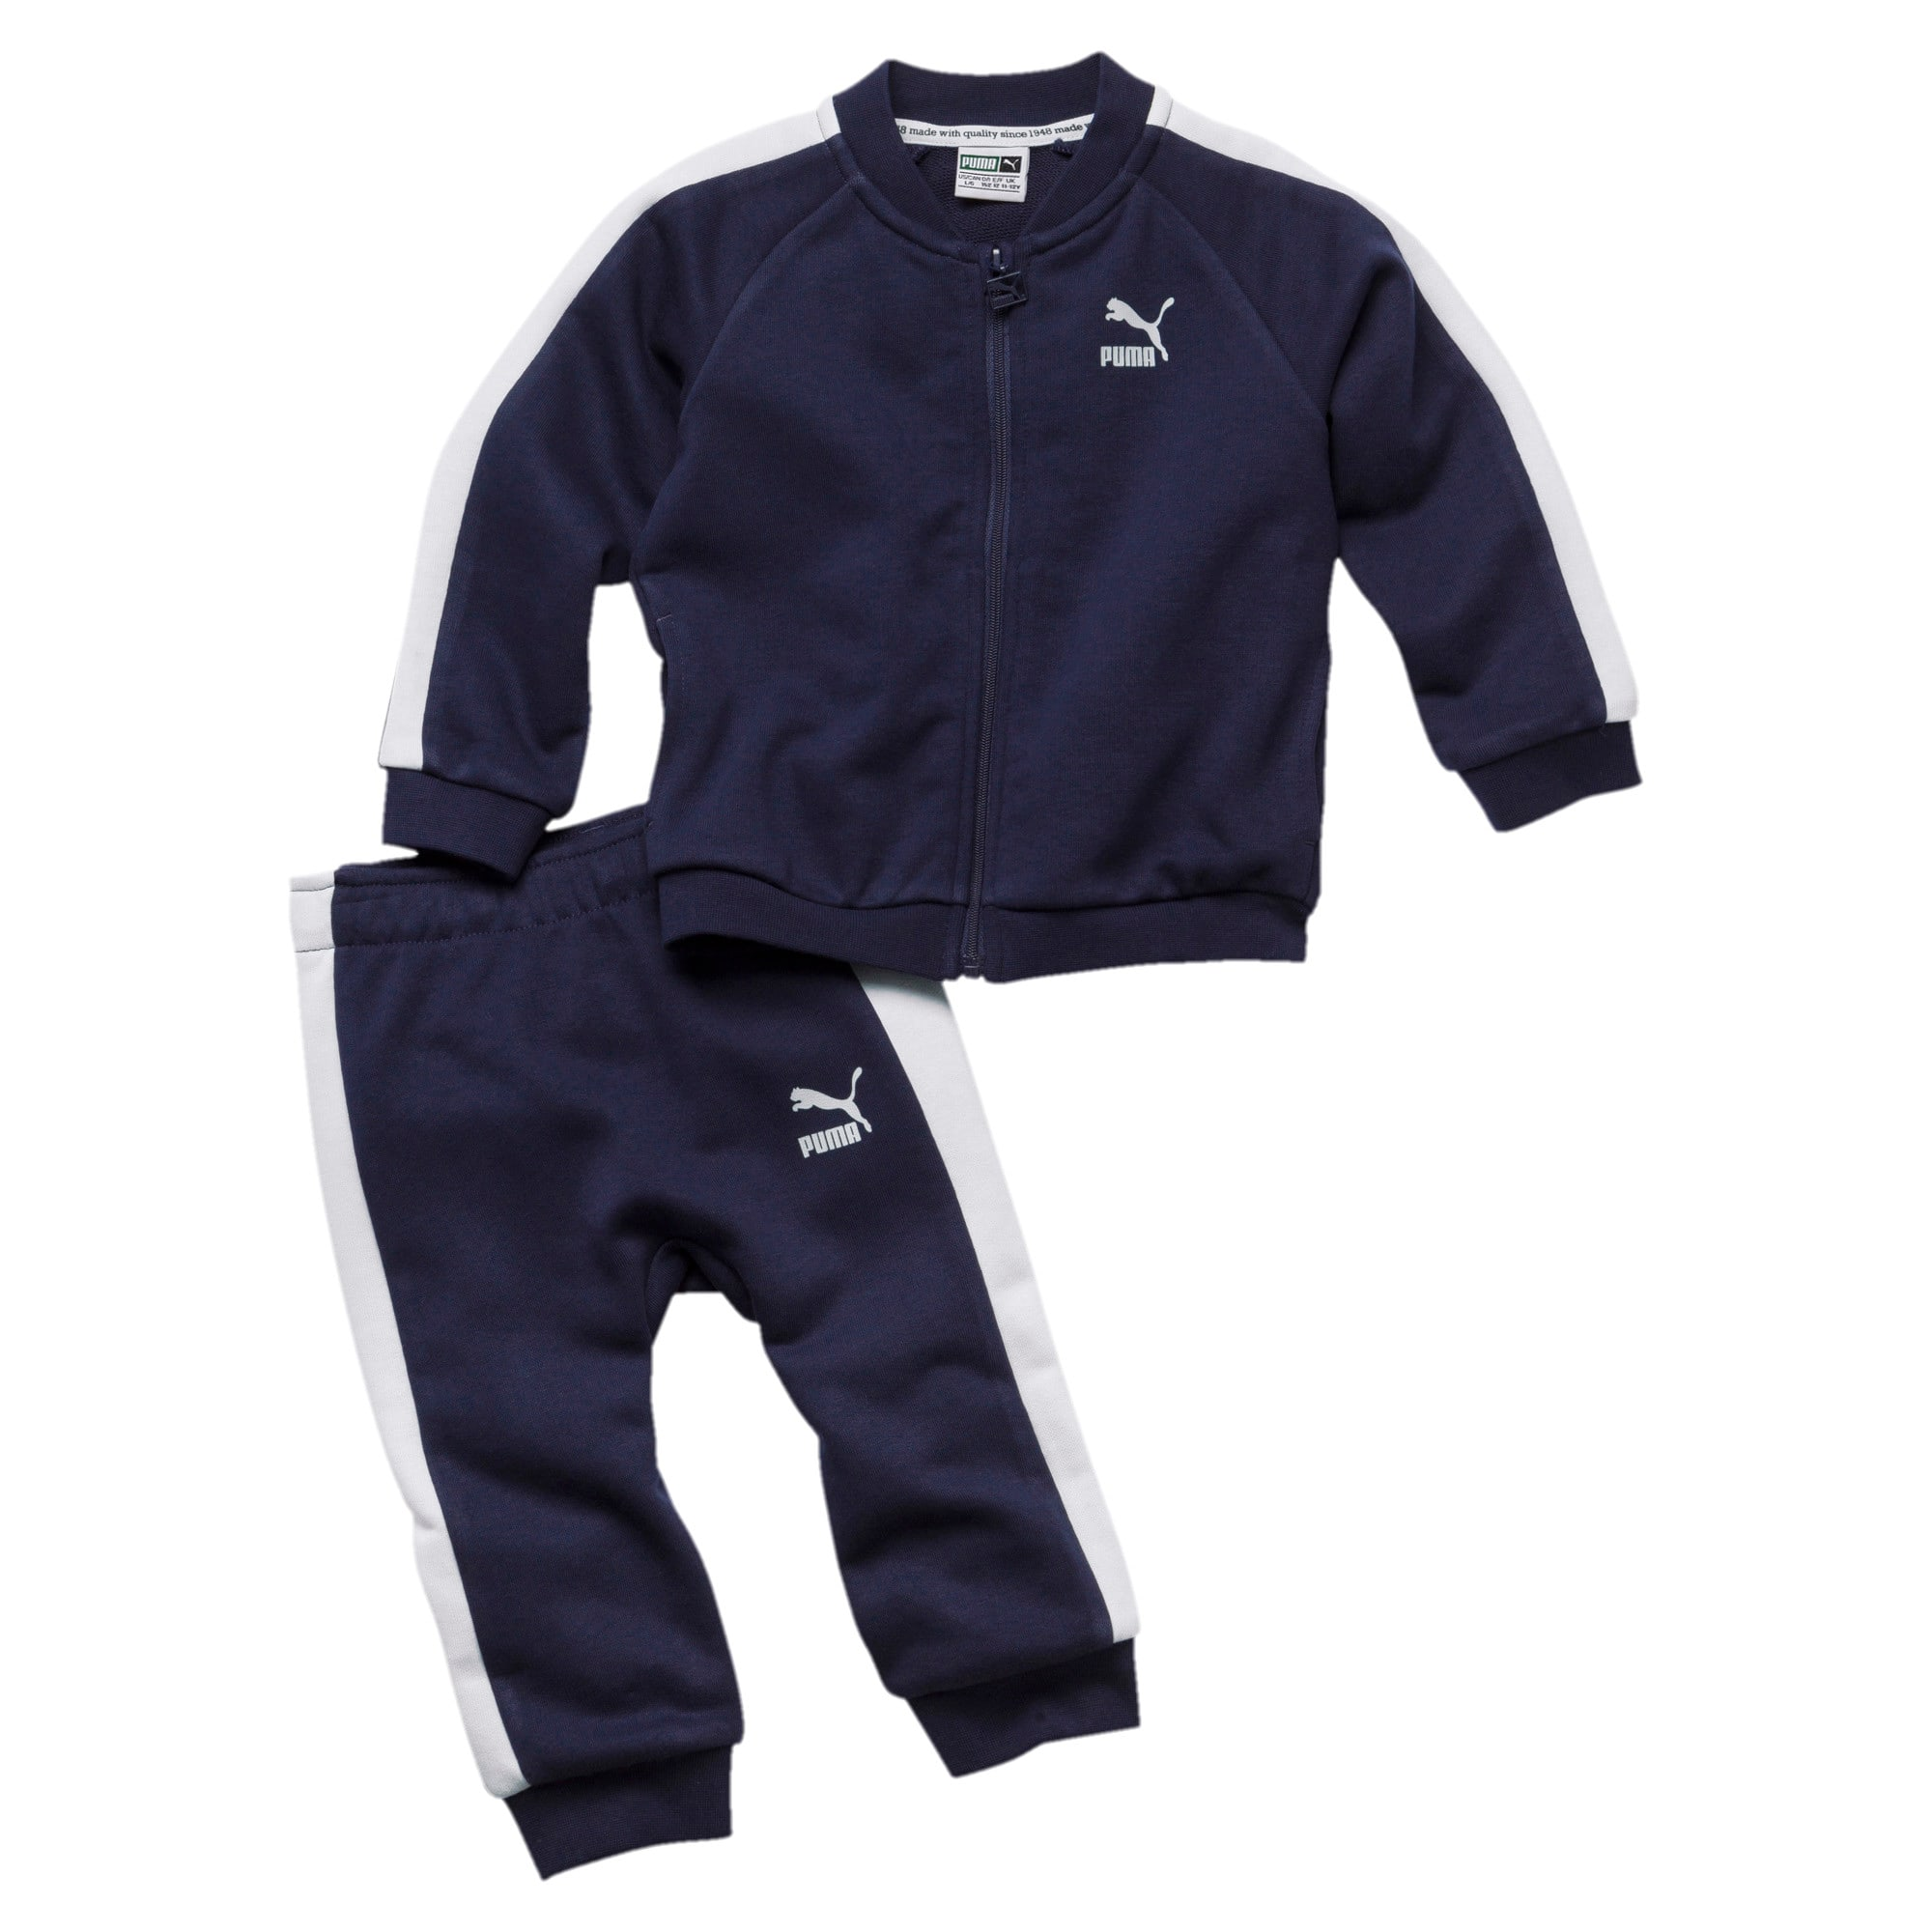 Thumbnail 1 of Minicats T7 Full Zip Babies' Jogger Set, Peacoat, medium